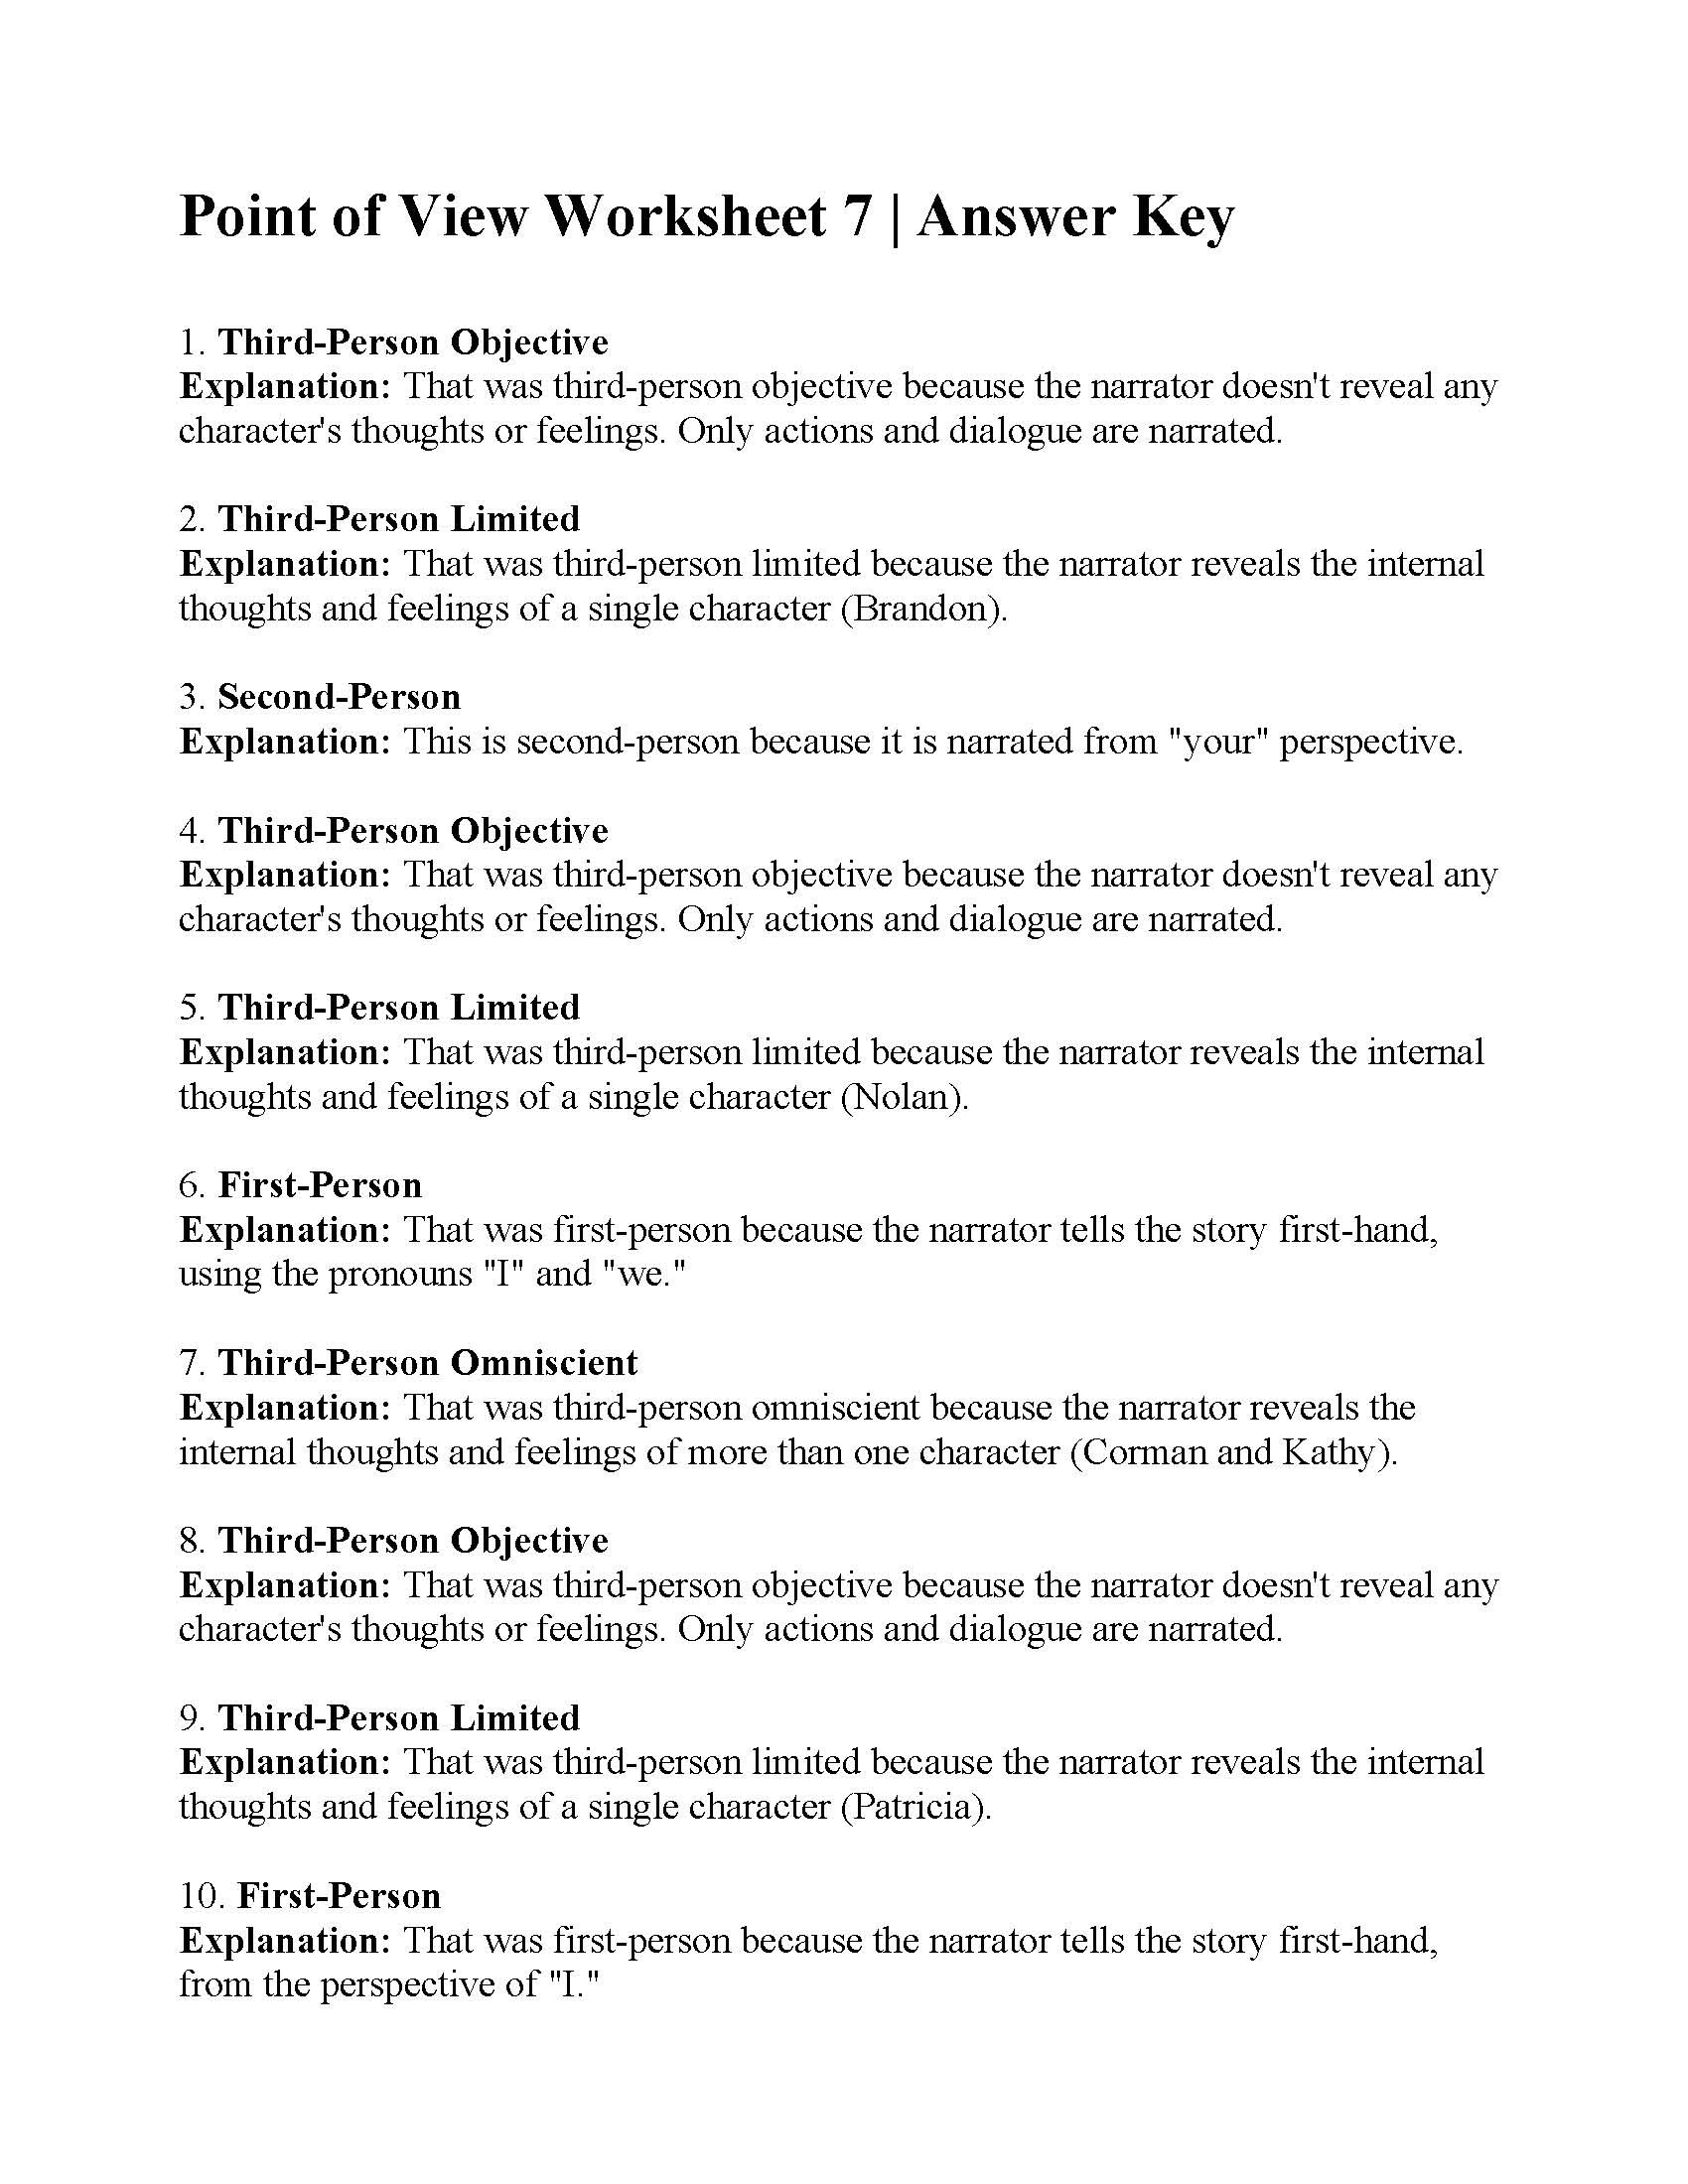 Point of View Worksheet 7